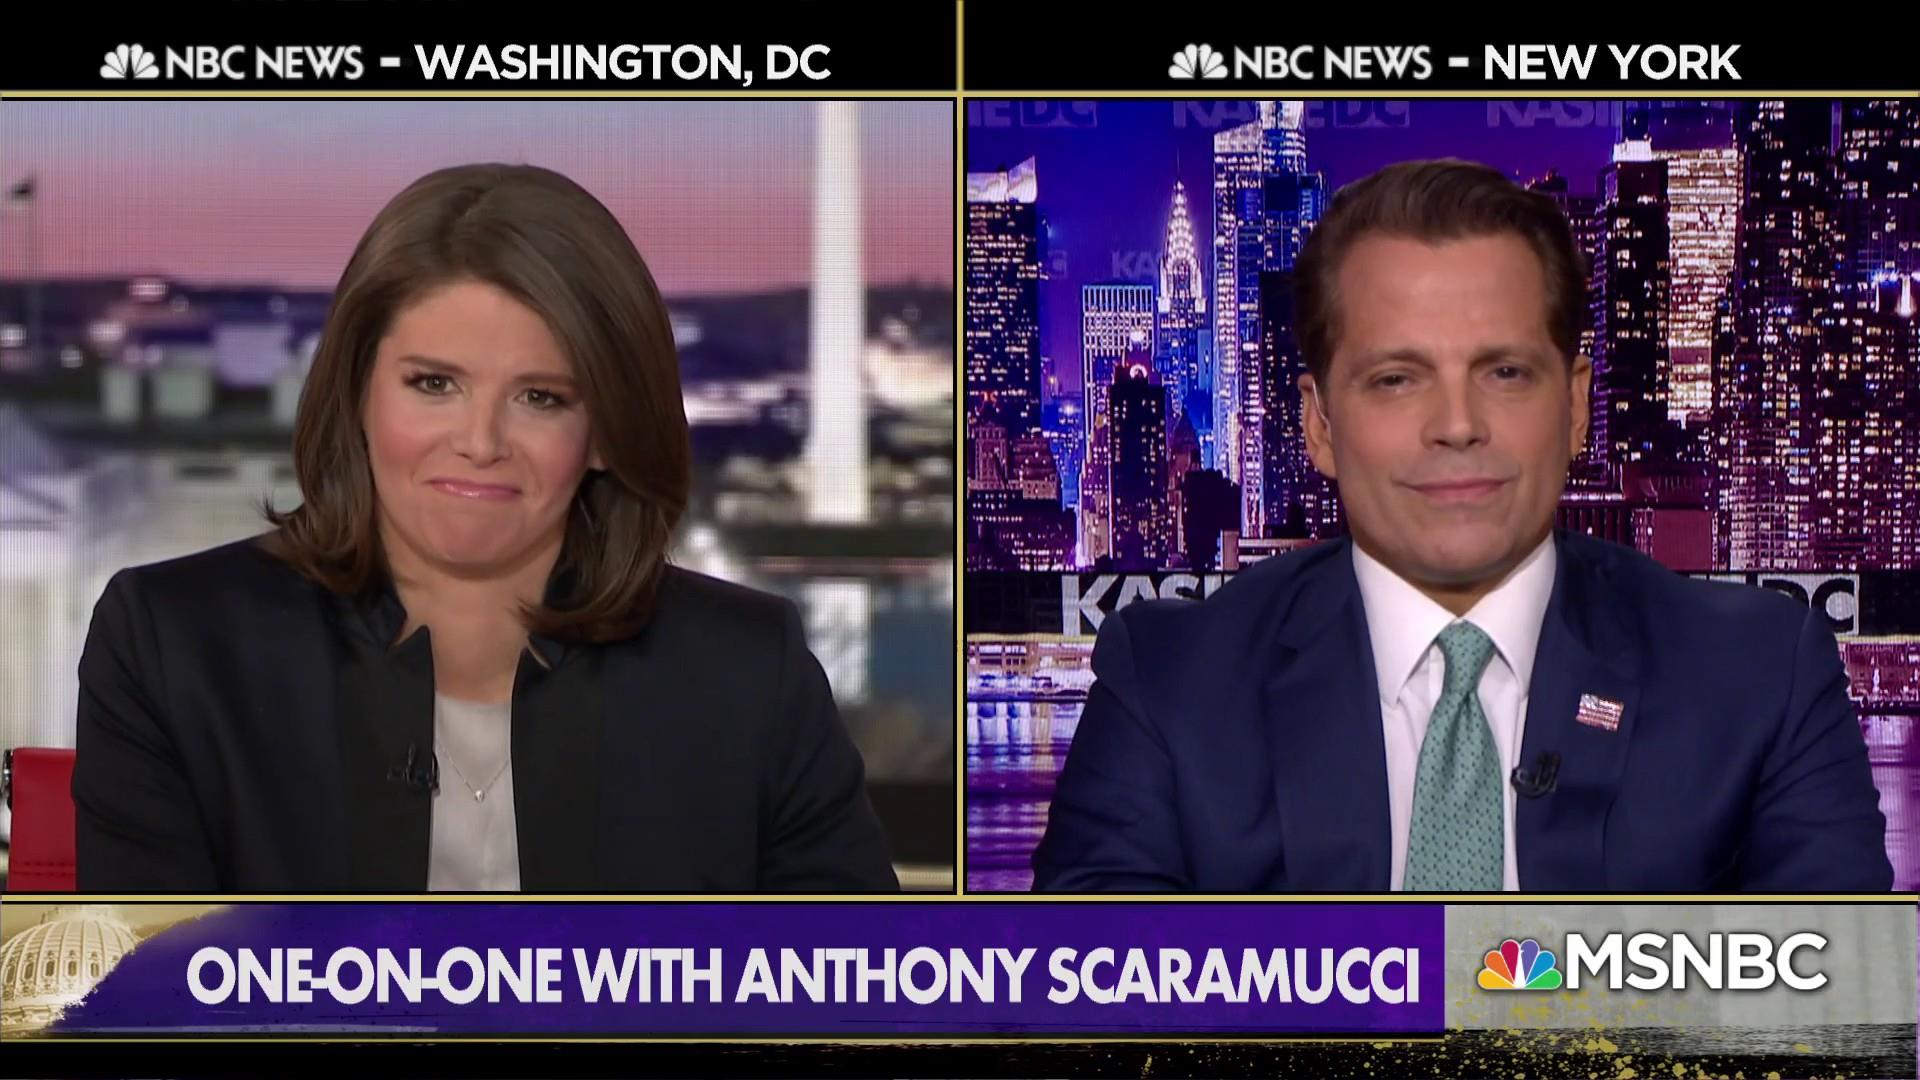 Scaramucci: If Trump tones it down on Twitter, his approval ratings will go up